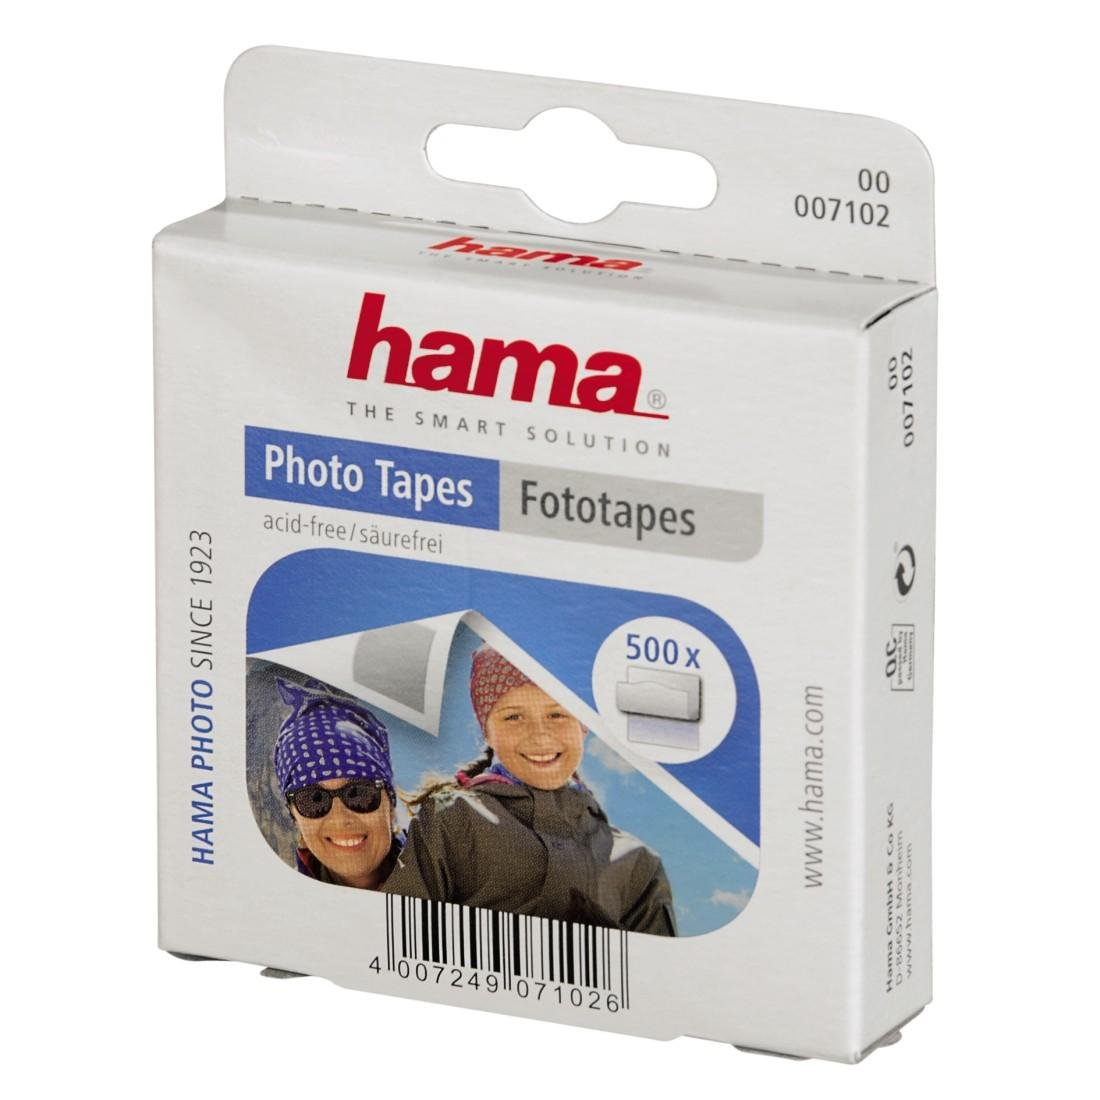 Hama Photo Corners 00007112